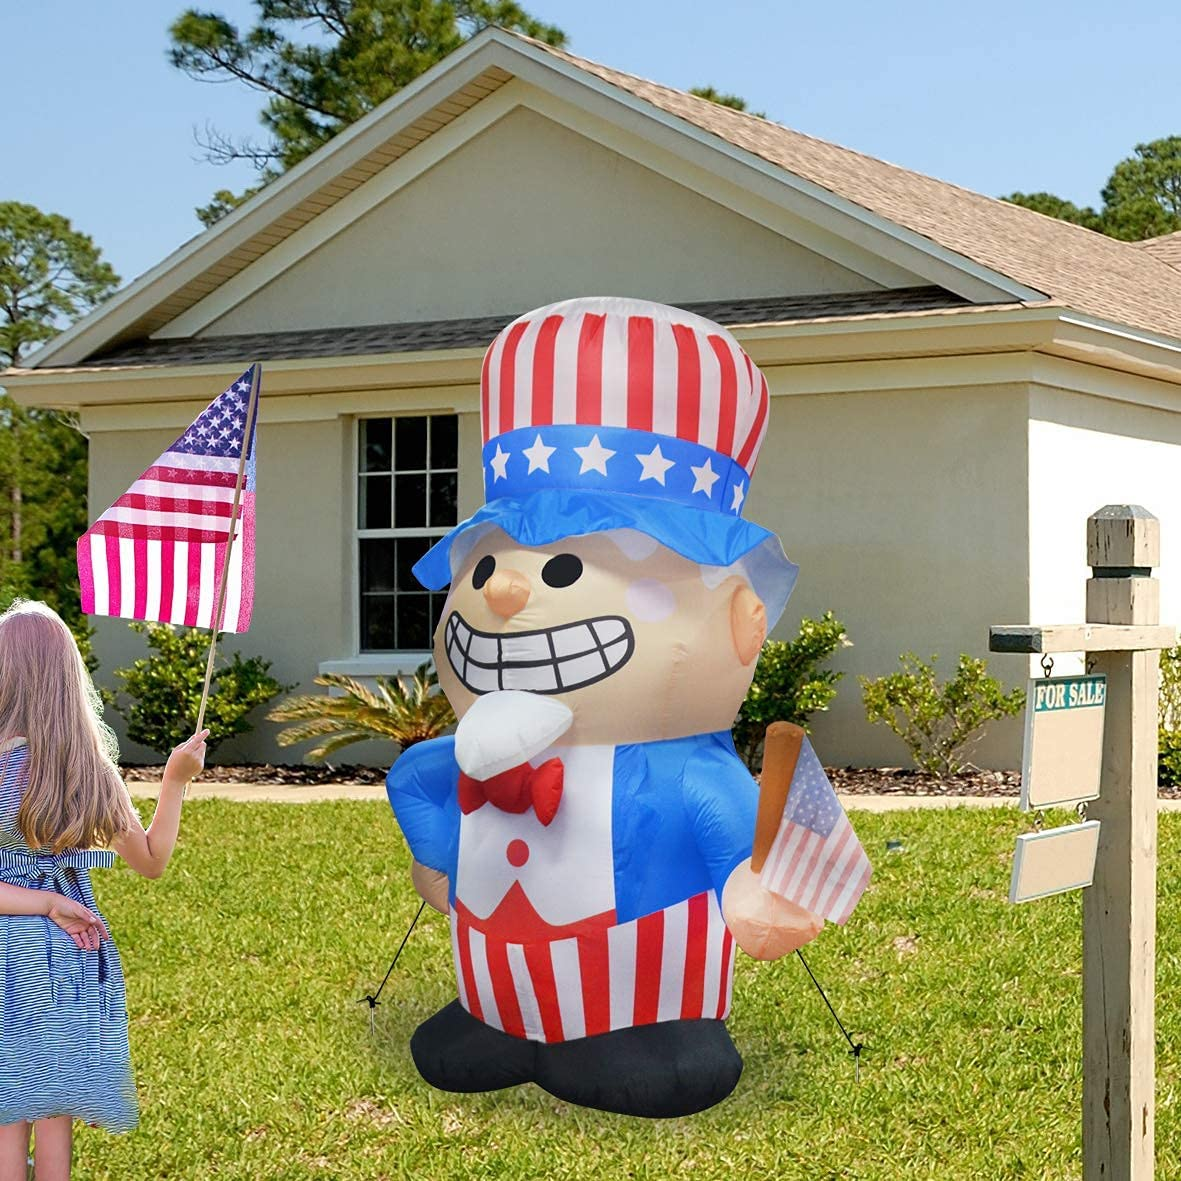 GOOSH 6.3 ft Tall Independence Day Inflatable Uncle Sam with Star Spangled Top Hat and American Flag Blowup Inflatables with Build-in LED Lights for Party Indoor,Outdoor,Yard,Garden,Lawn Decorations